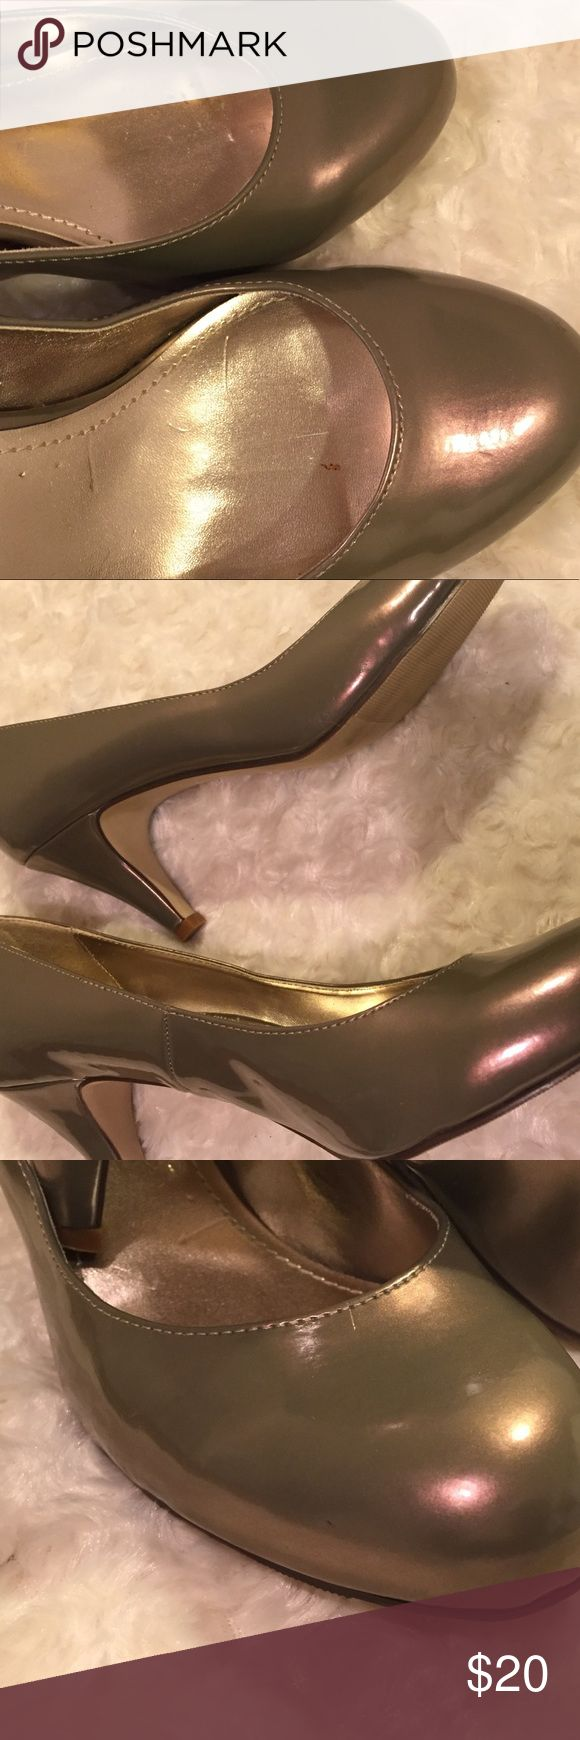 Gabriella Rocha shoe Great condition gabriella rocha Shoes Heels